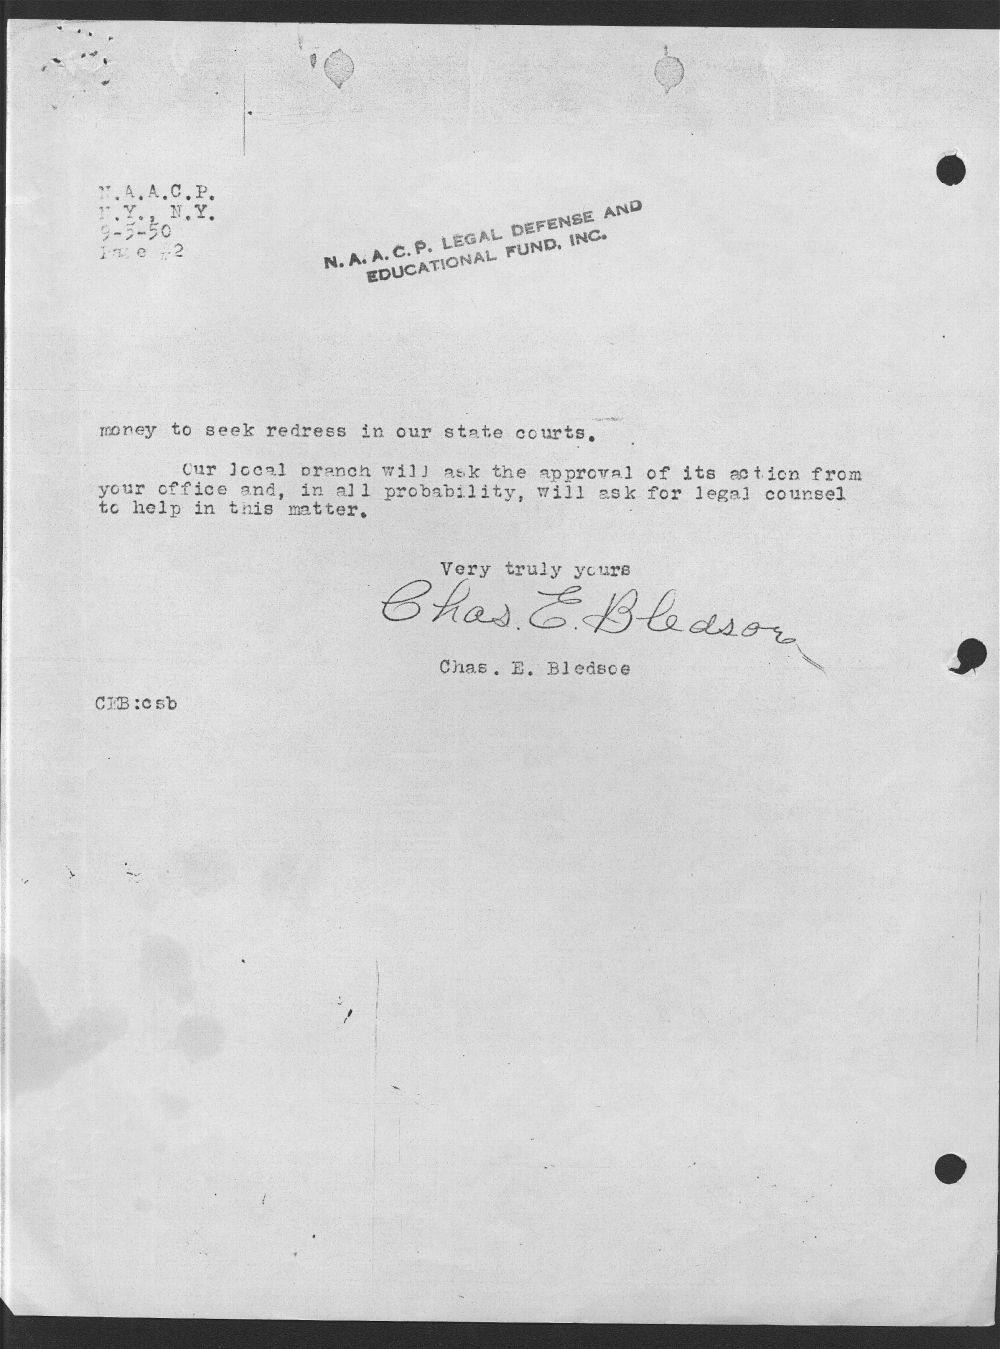 Charles E. Bledsoe to the NAACP Legal Department - 2